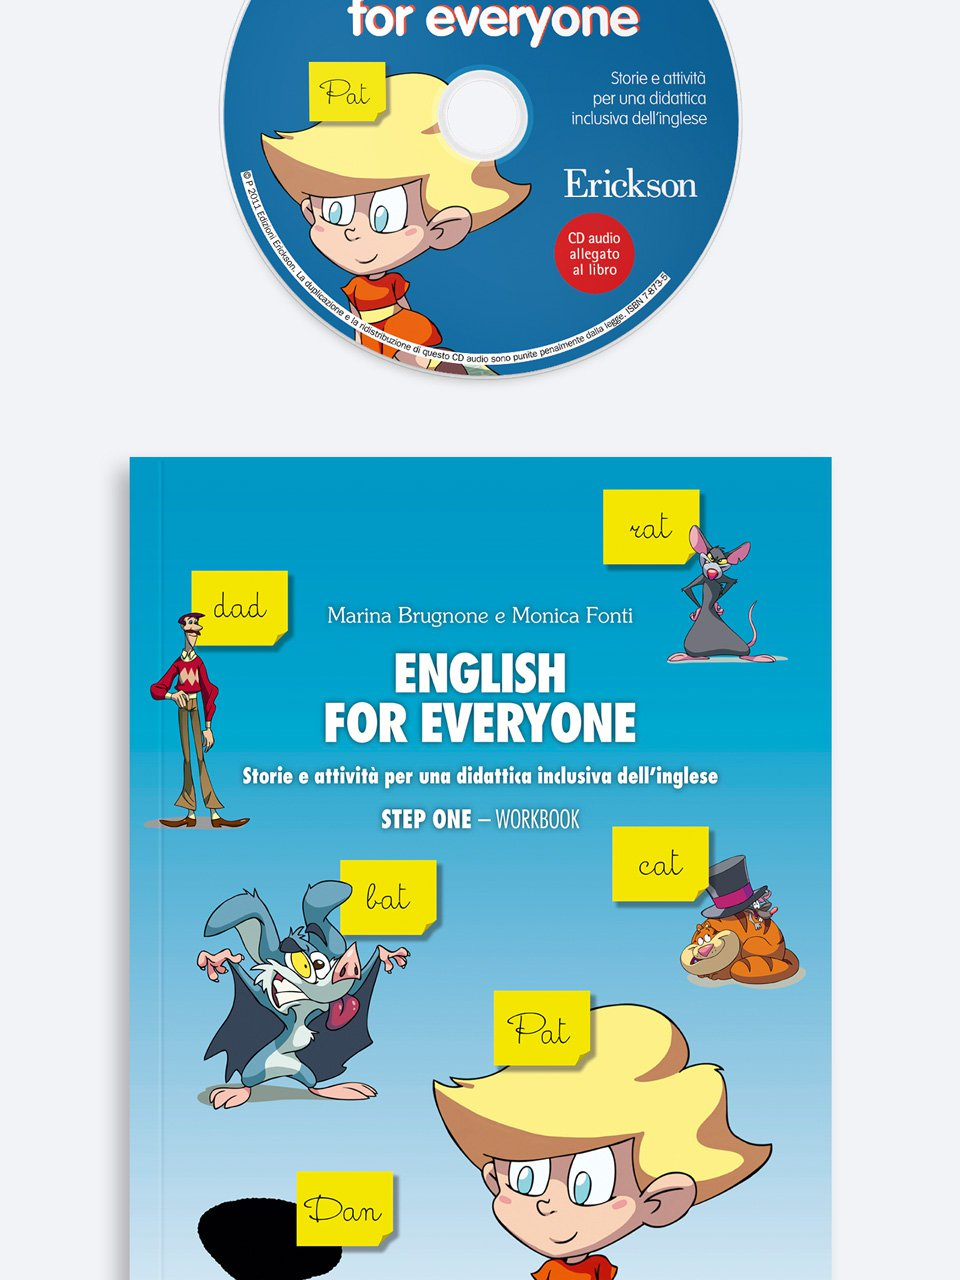 English for everyone - STEP ONE - My First Word Games - App e software - Erickson